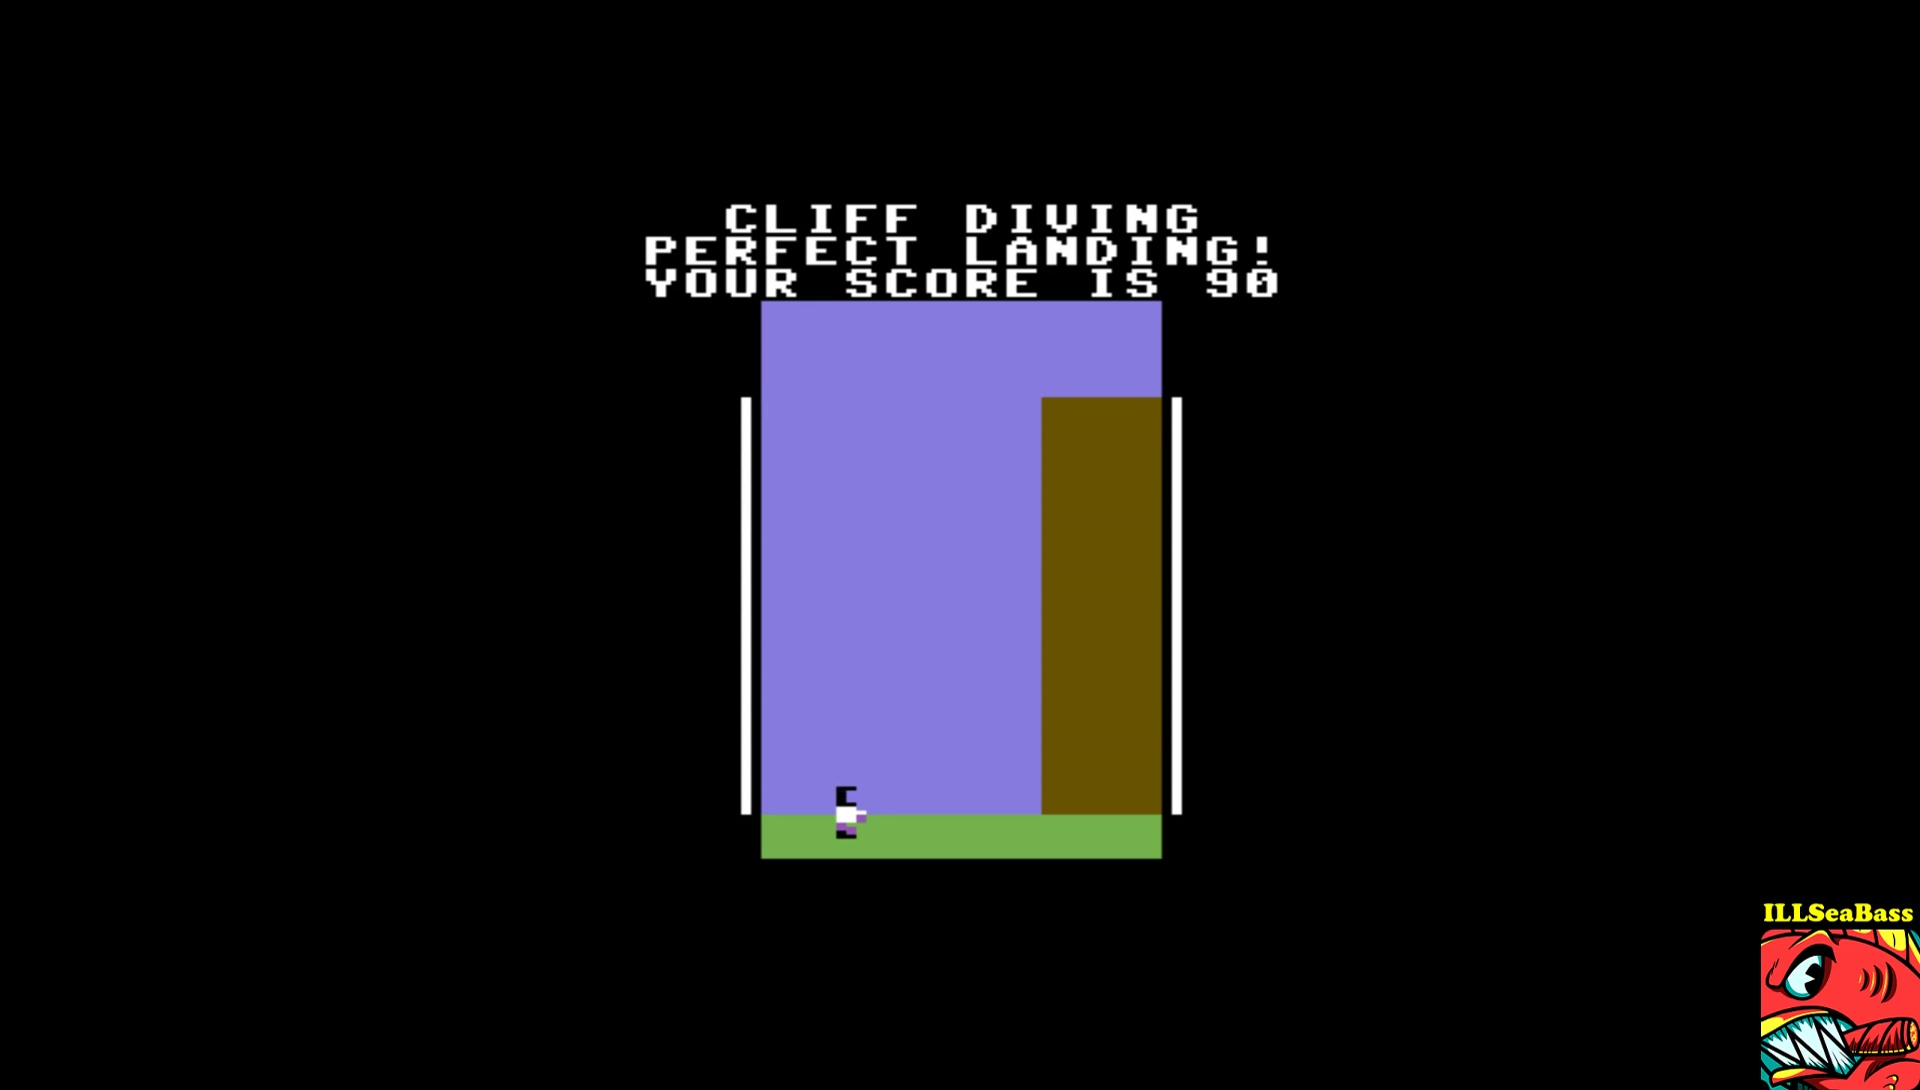 ILLSeaBass: Cliff Diving (Commodore 64 Emulated) 90 points on 2017-06-06 00:05:40